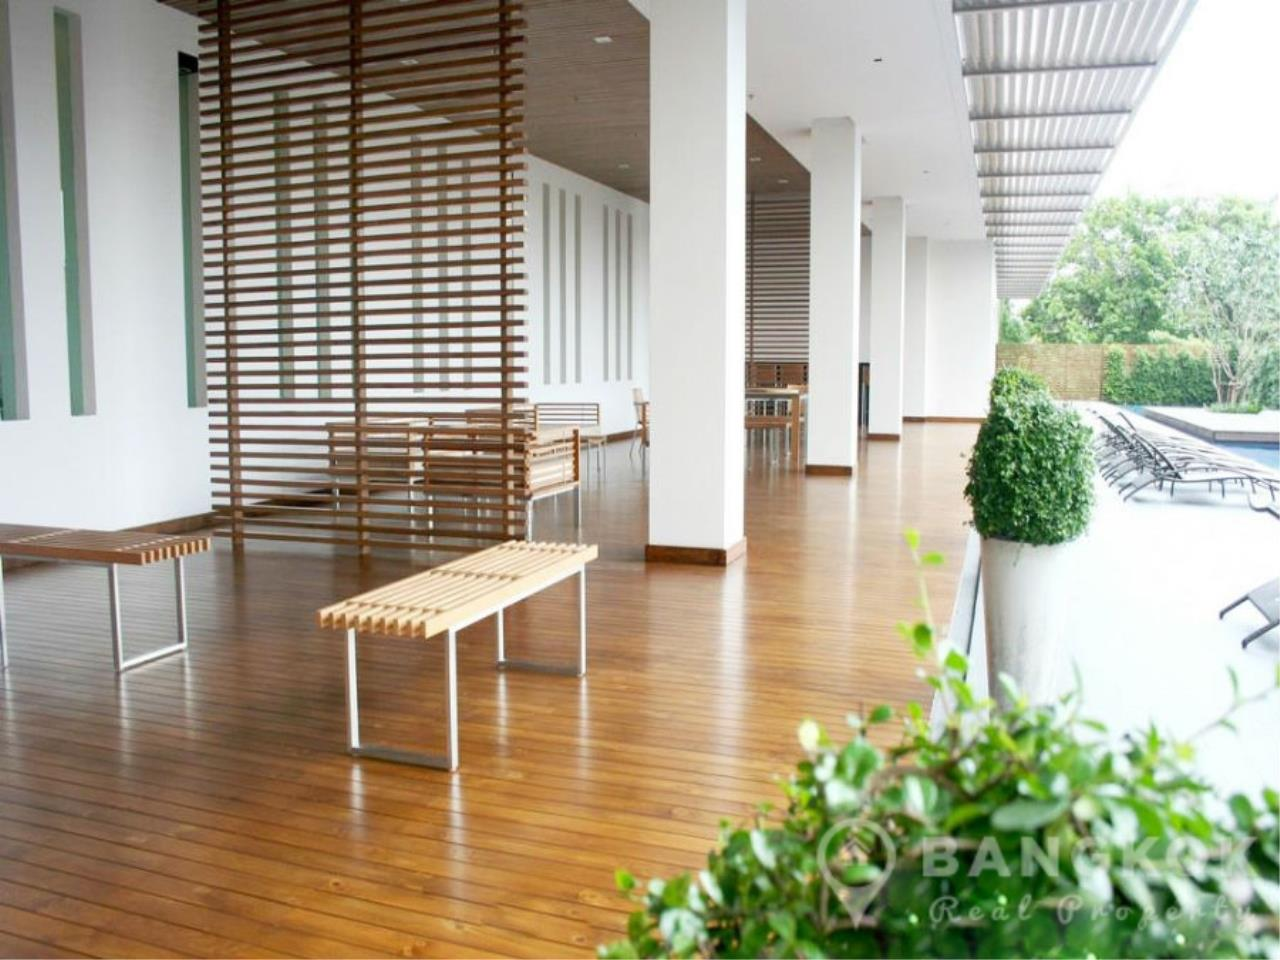 Bangkok Real Property Agency's The Lofts Yenakart | Bright Modern 2 Bed 2 Bath with Large Balcony 15